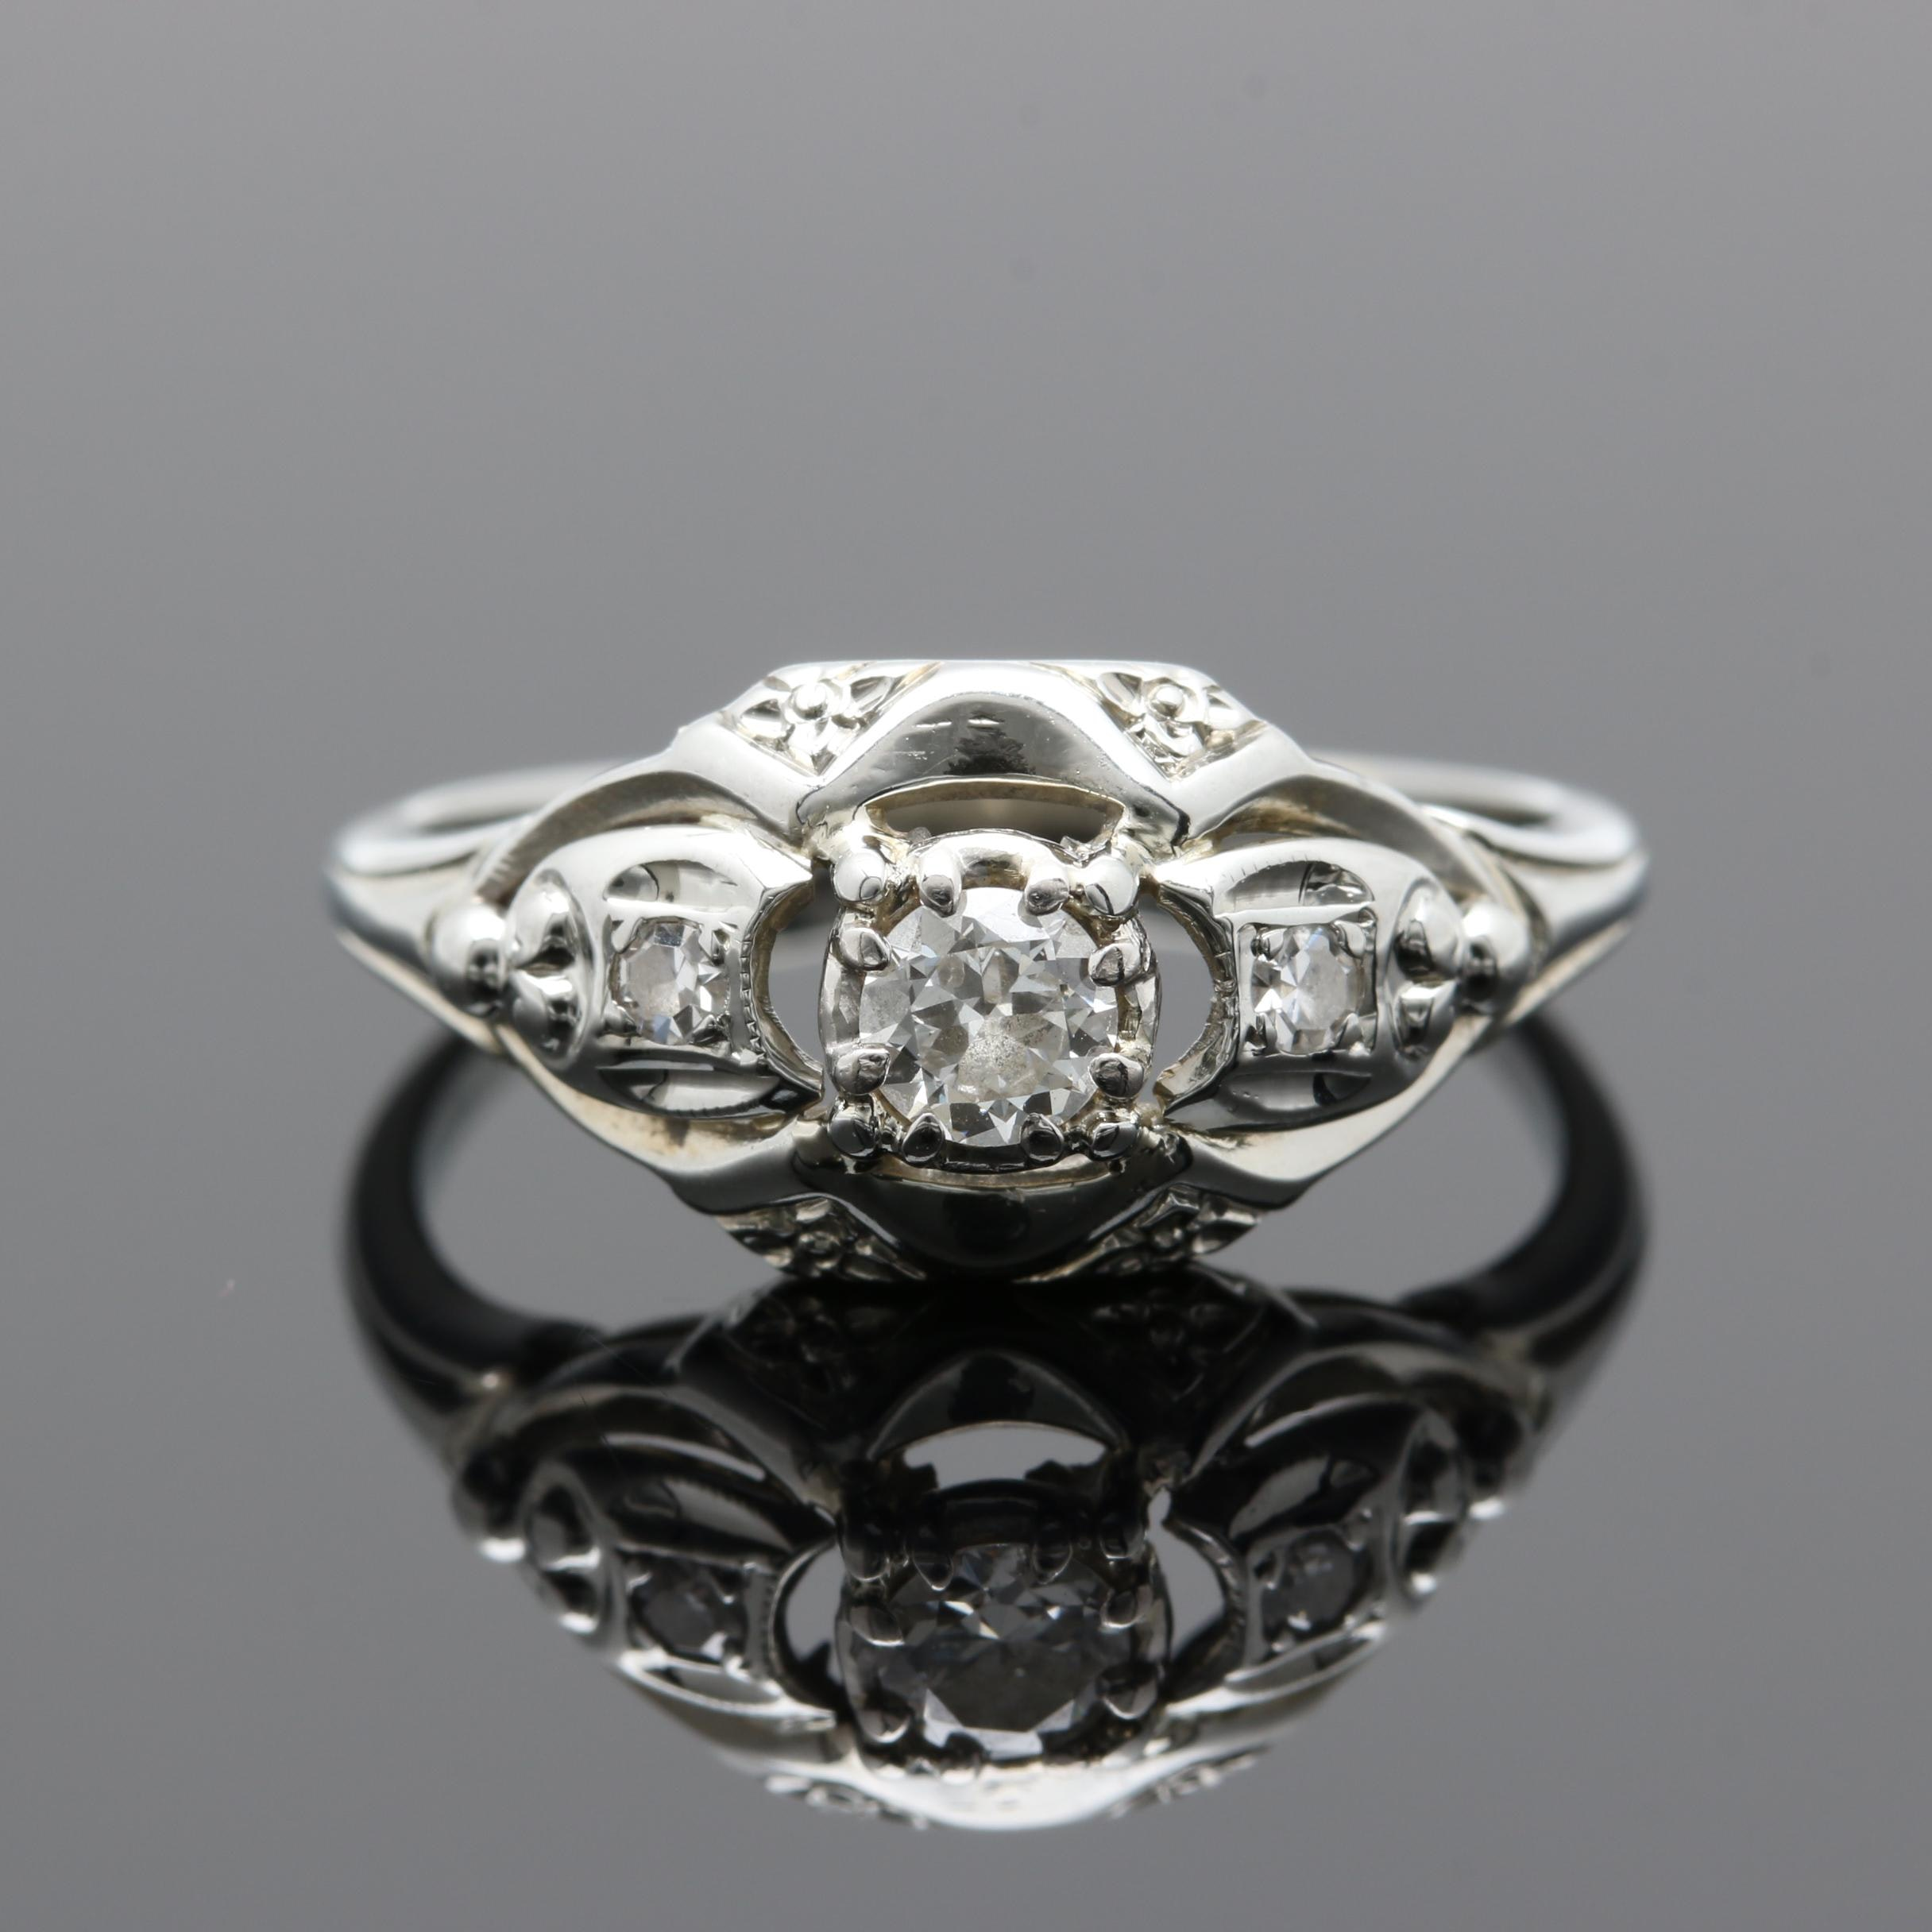 18K White Gold Diamond Ring with Platinum Accent